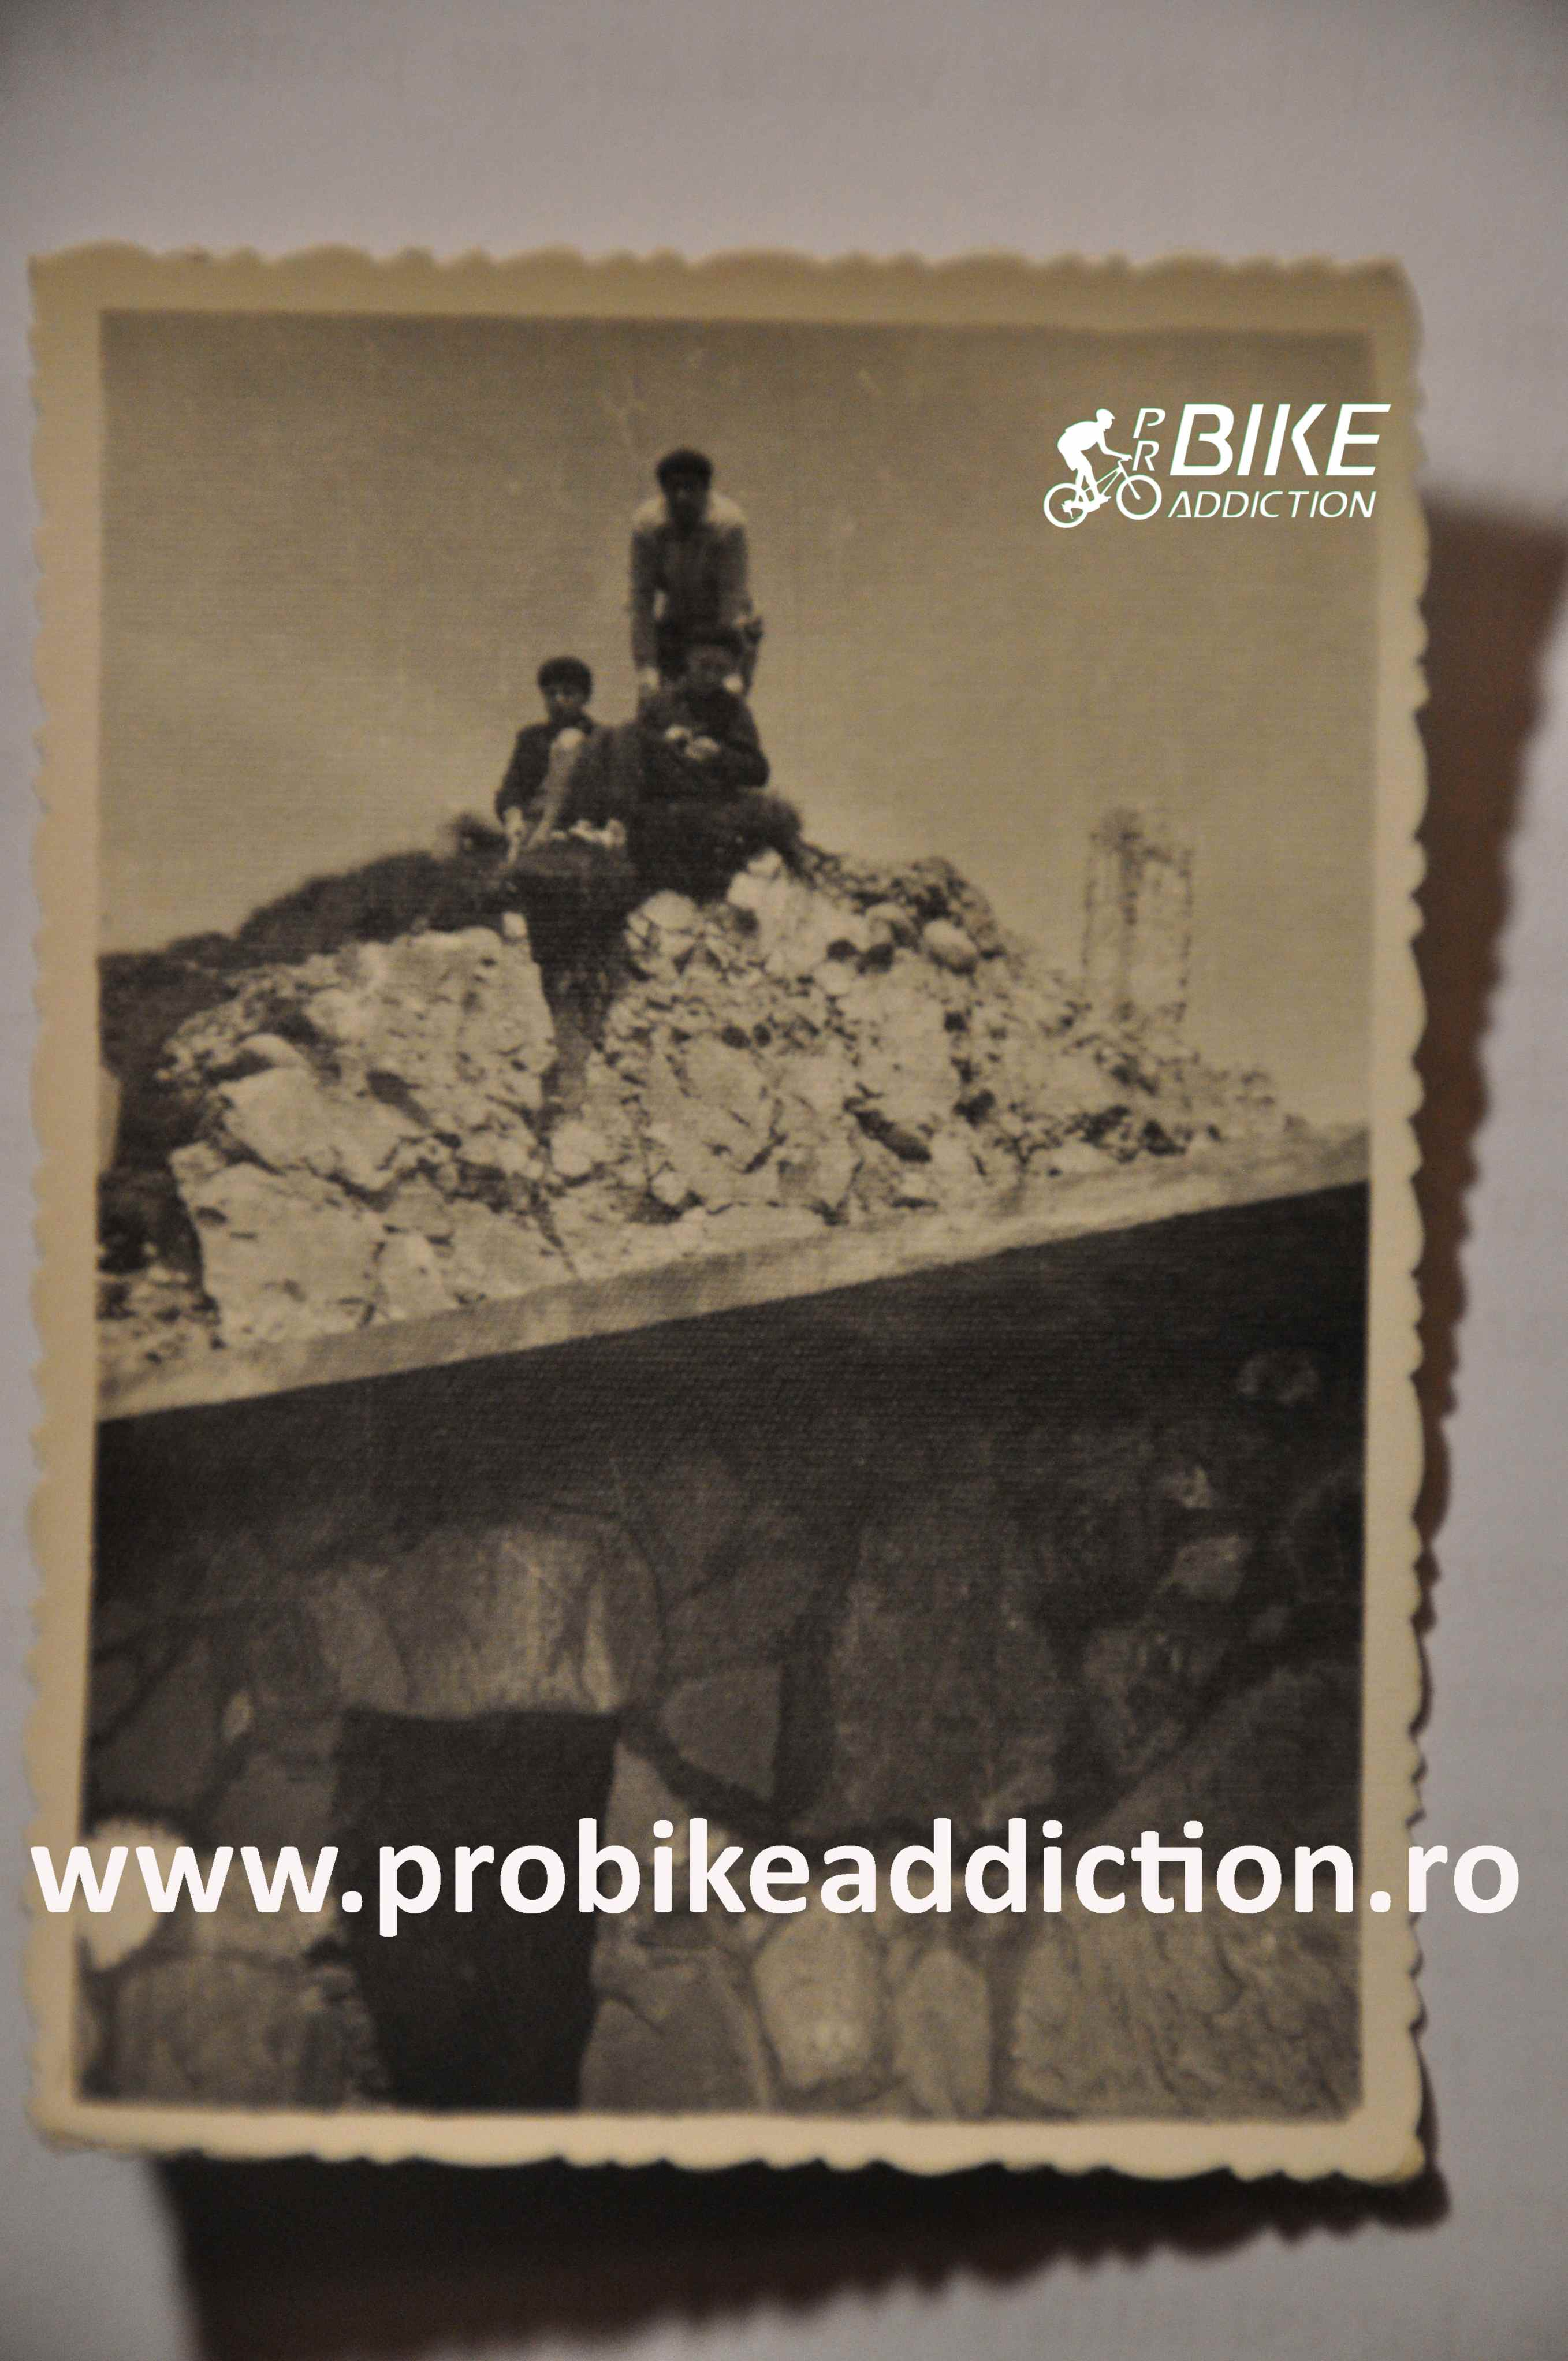 probikeaddiction varful toaca anii 60 ceahlau fotografii document